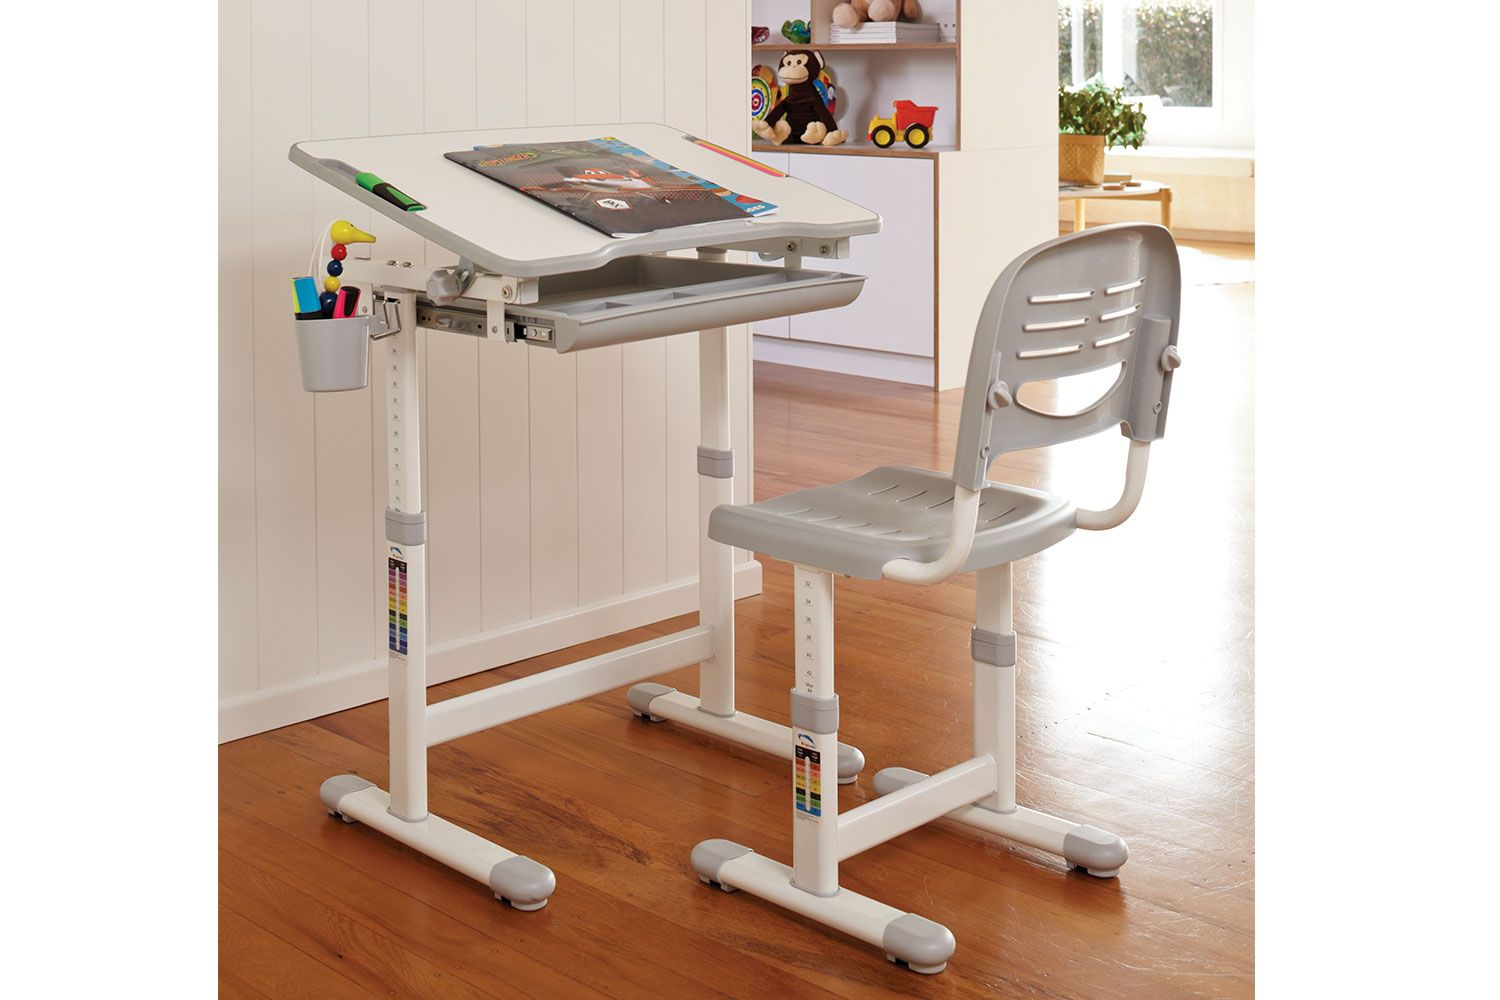 The Ergonomic Kids Desk and Chair is perfect for your